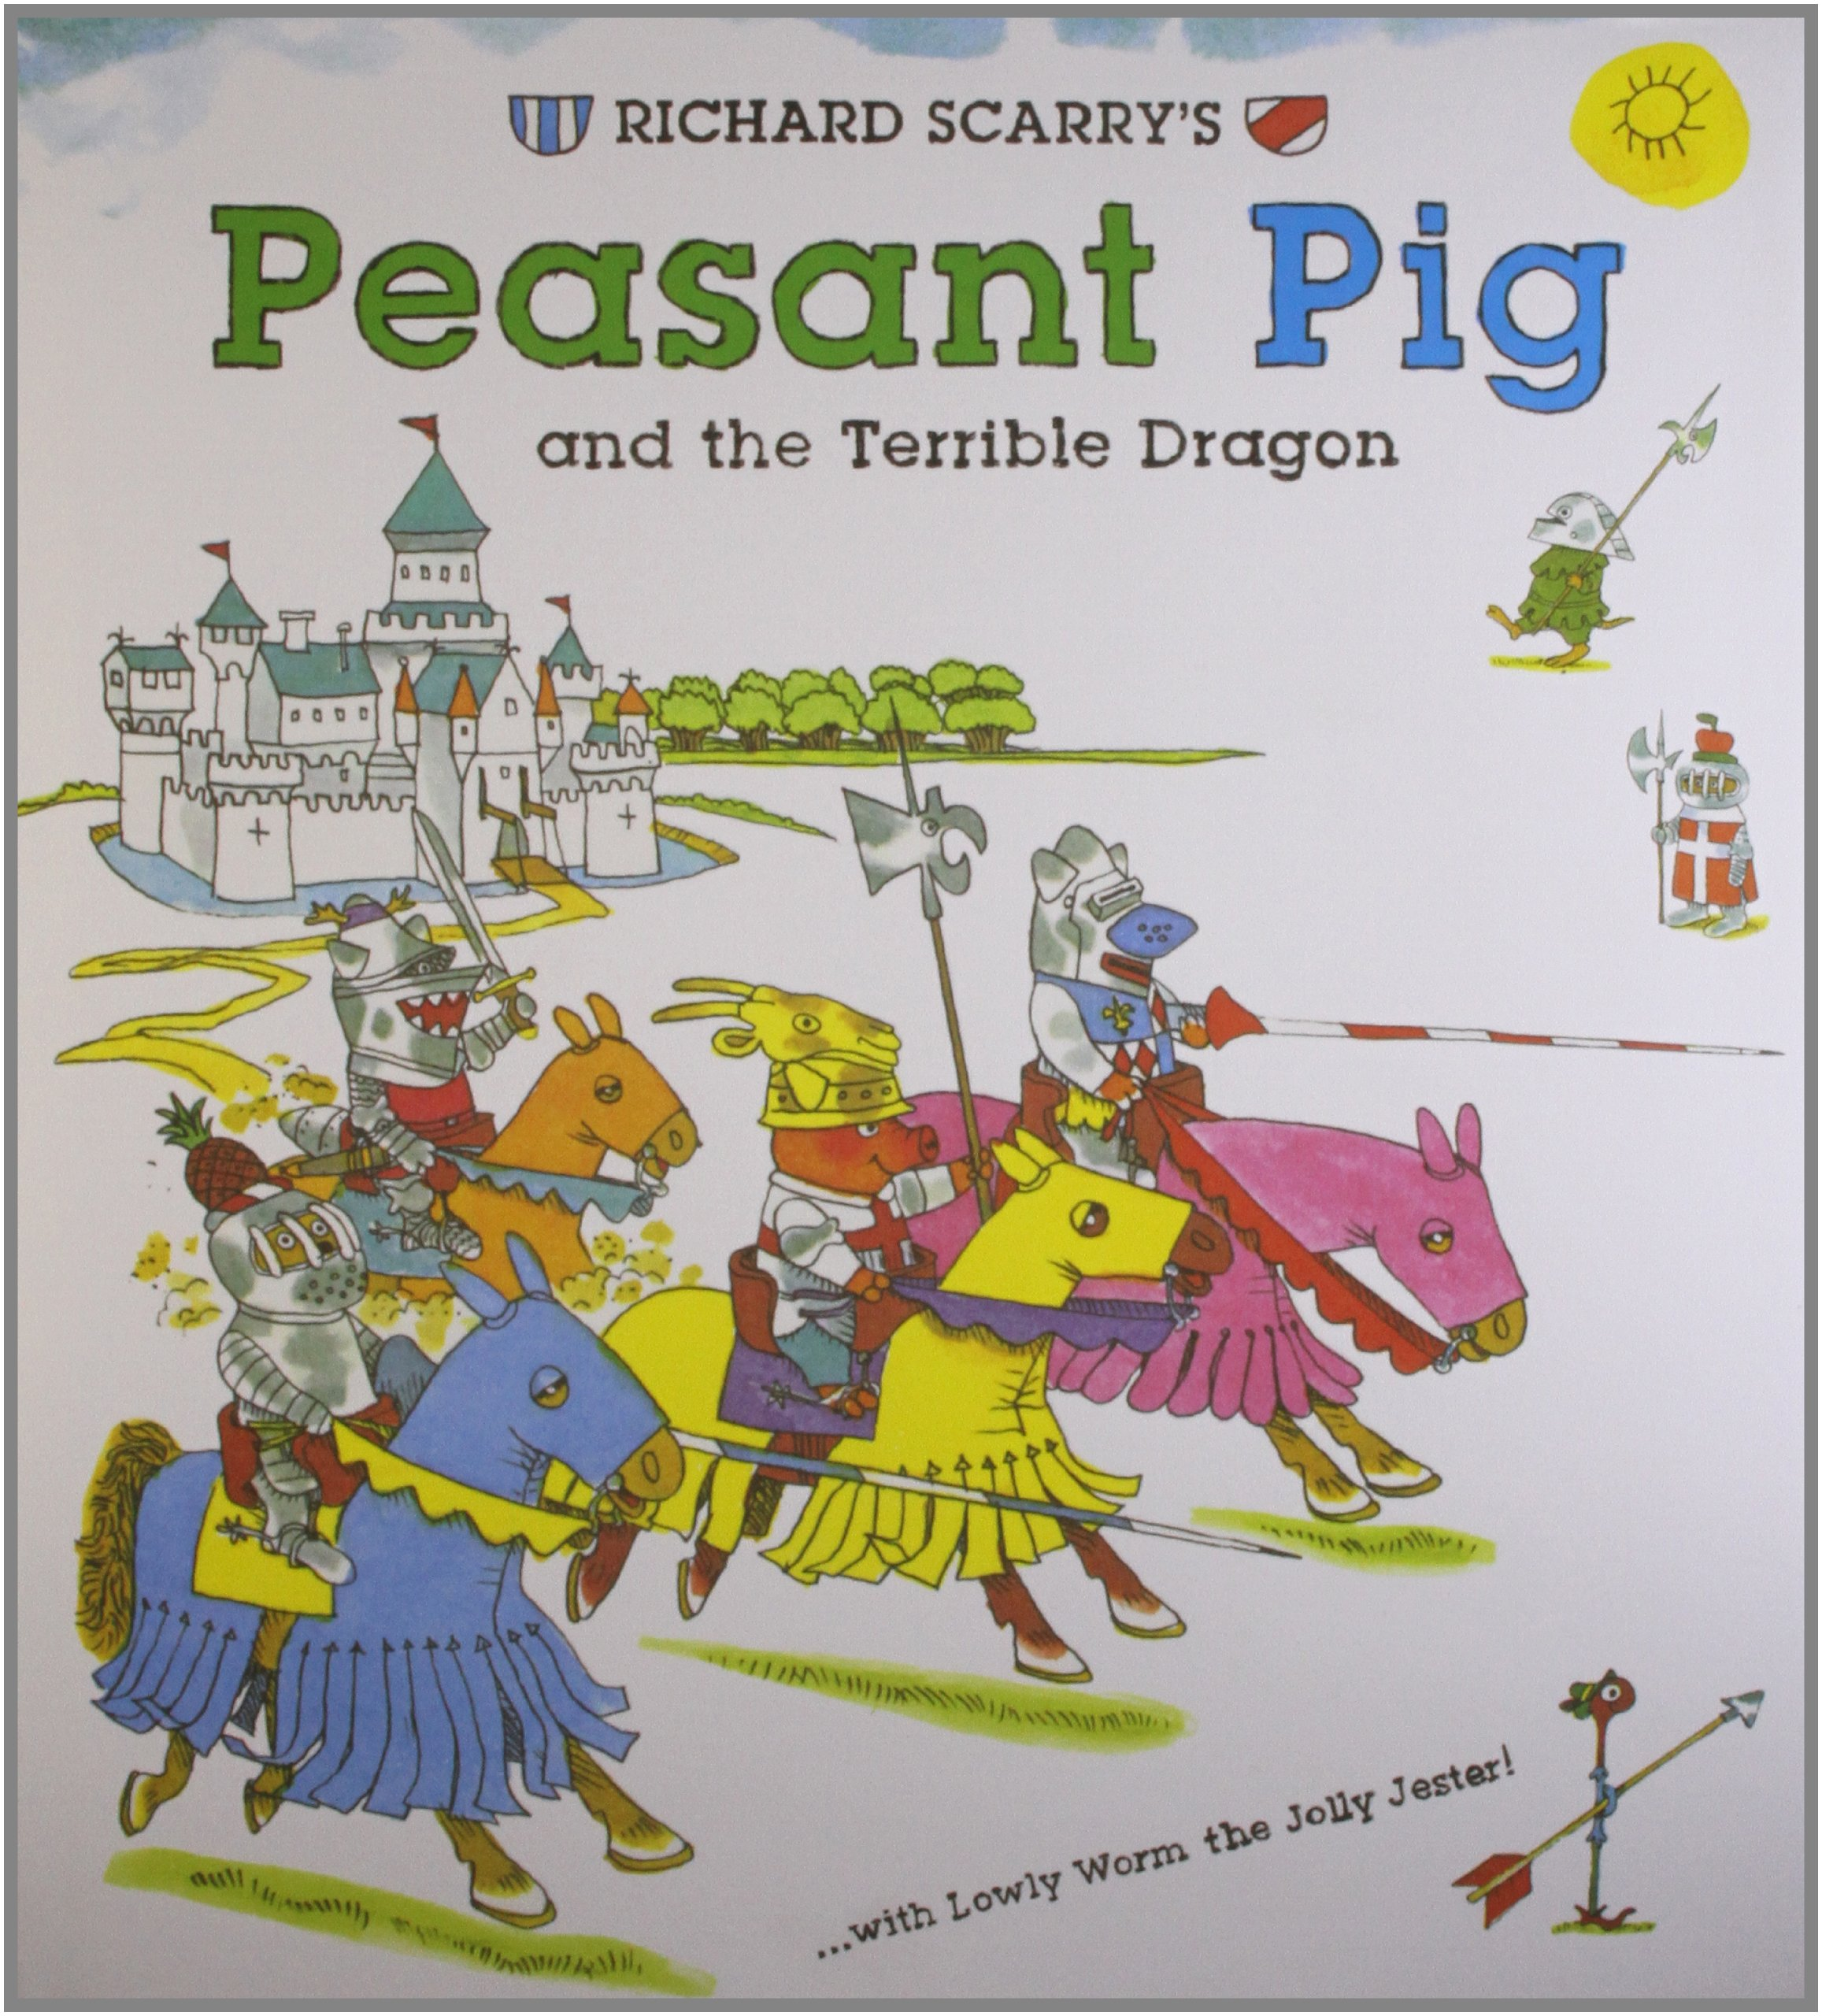 Richard Scarry's Peasant Pig and the Terrible Dragon: With Lowly Worm the Jolly Jester! pdf epub